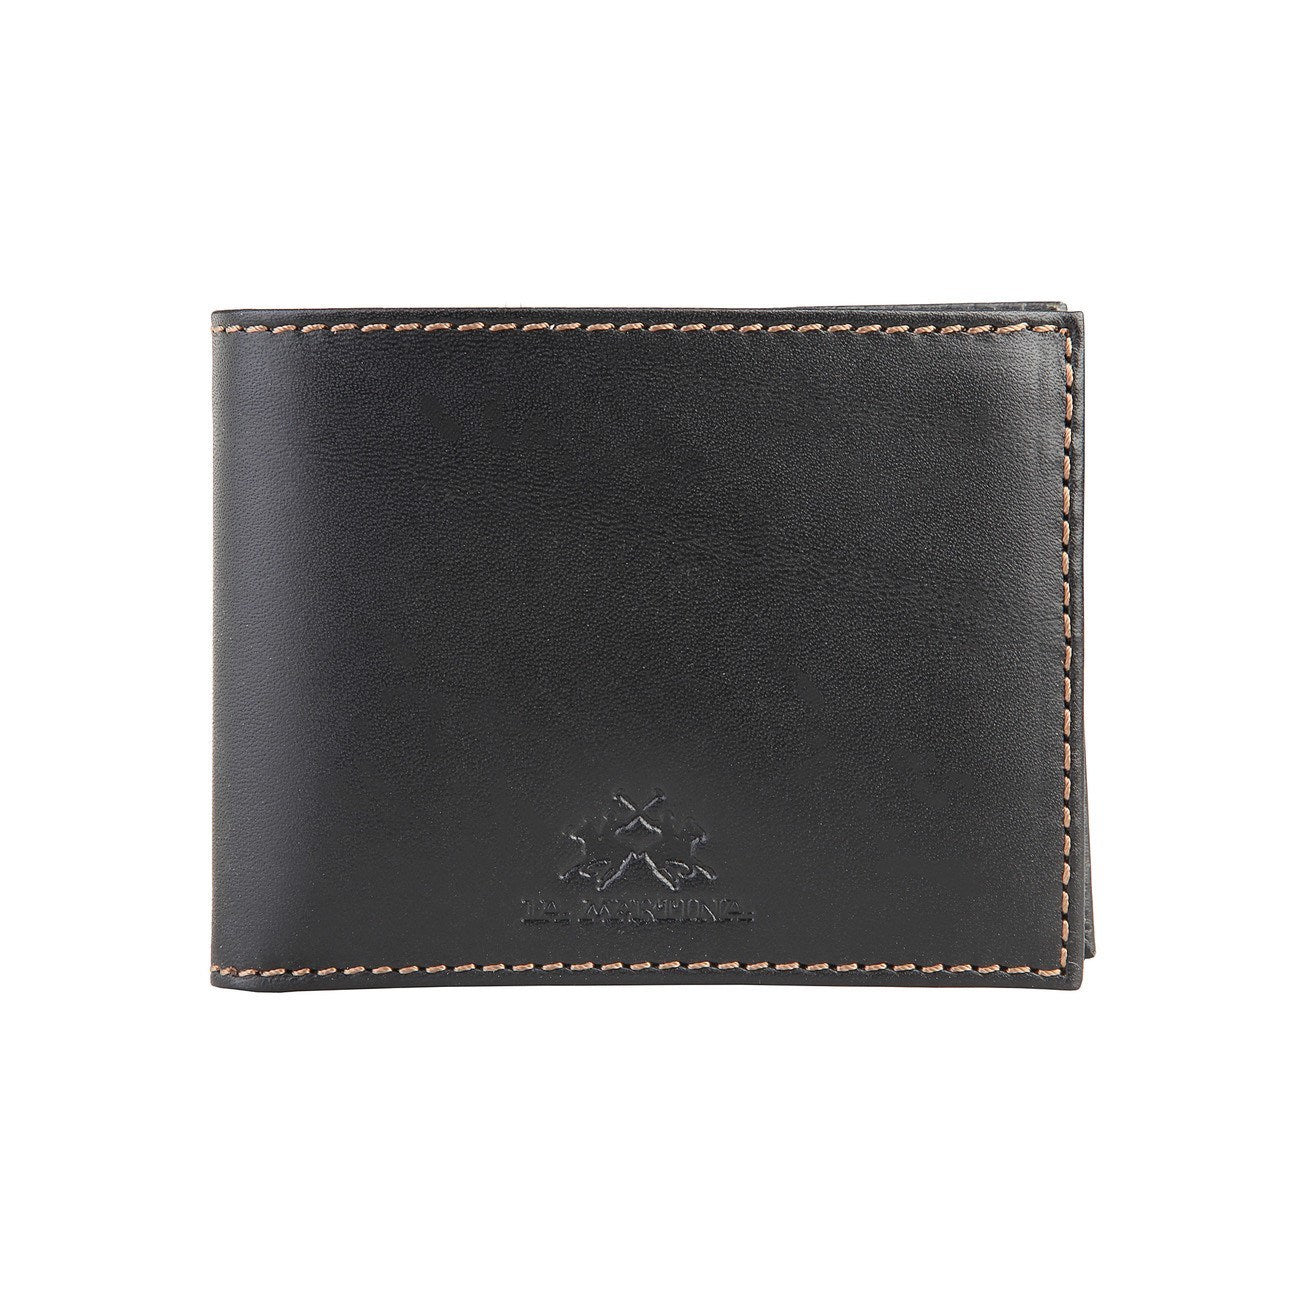 La Martina Men's Leather wallet - Black - Ninostyle